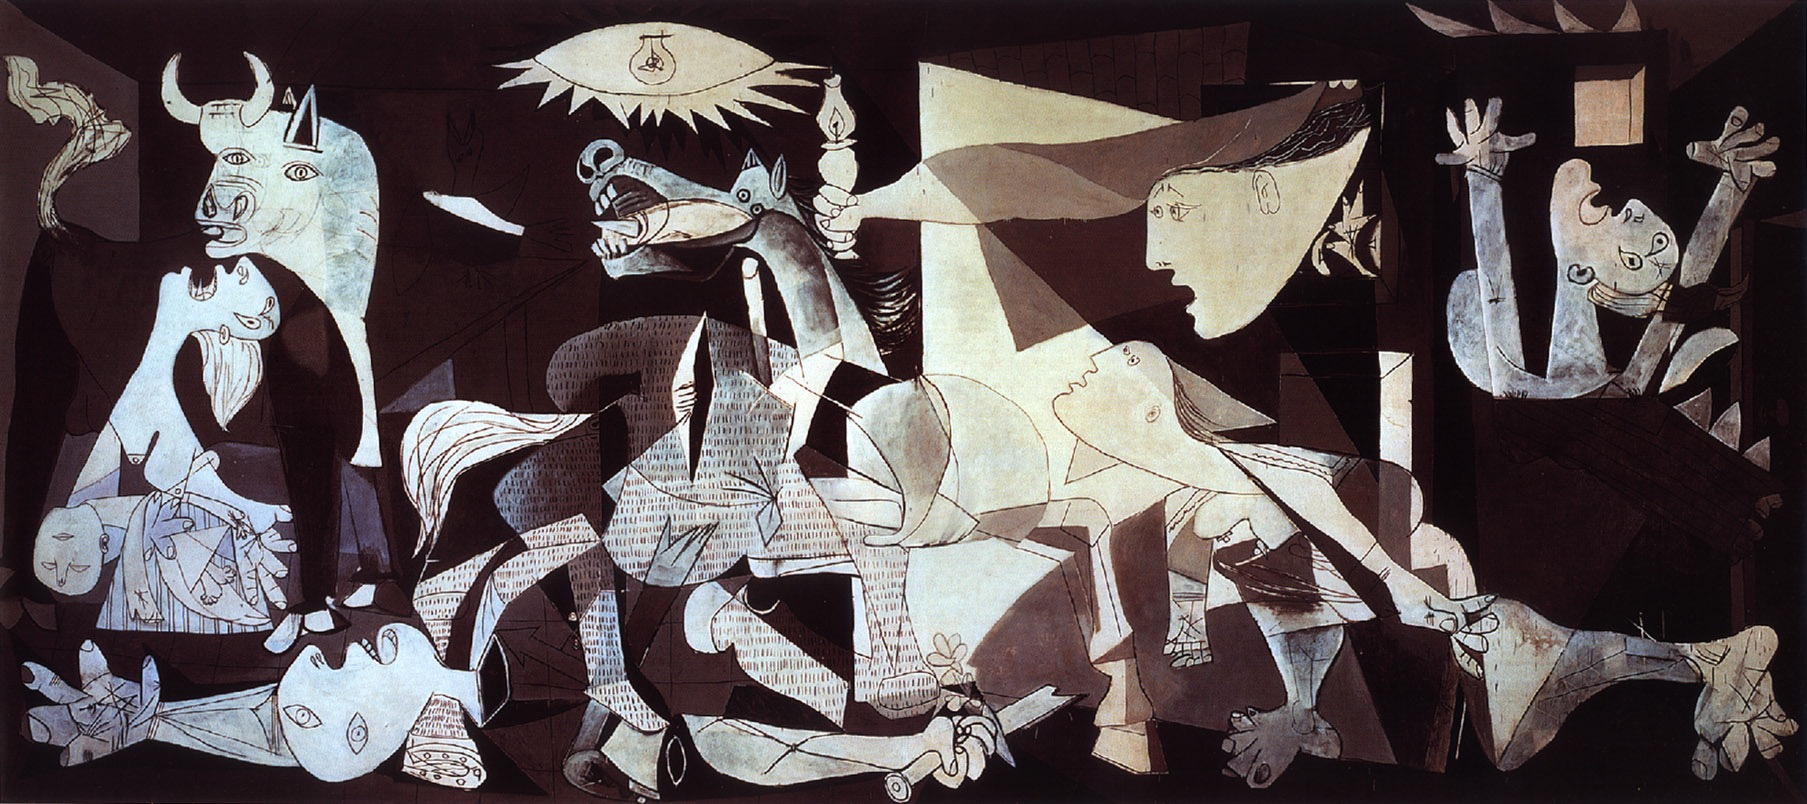 Pablo Picasso (Spanish, Cubism, 1881–1973): Guernica, 1937. Oil on canvas, 349 x 776 cm (137.4 × 305.5 inches), Museo Reina Sofia, Madrid. © Estate of Pablo Picasso / Artists Rights Society (ARS), New York © This artwork may be protected by copyright. It is posted on the site in accordance with fair use principles.